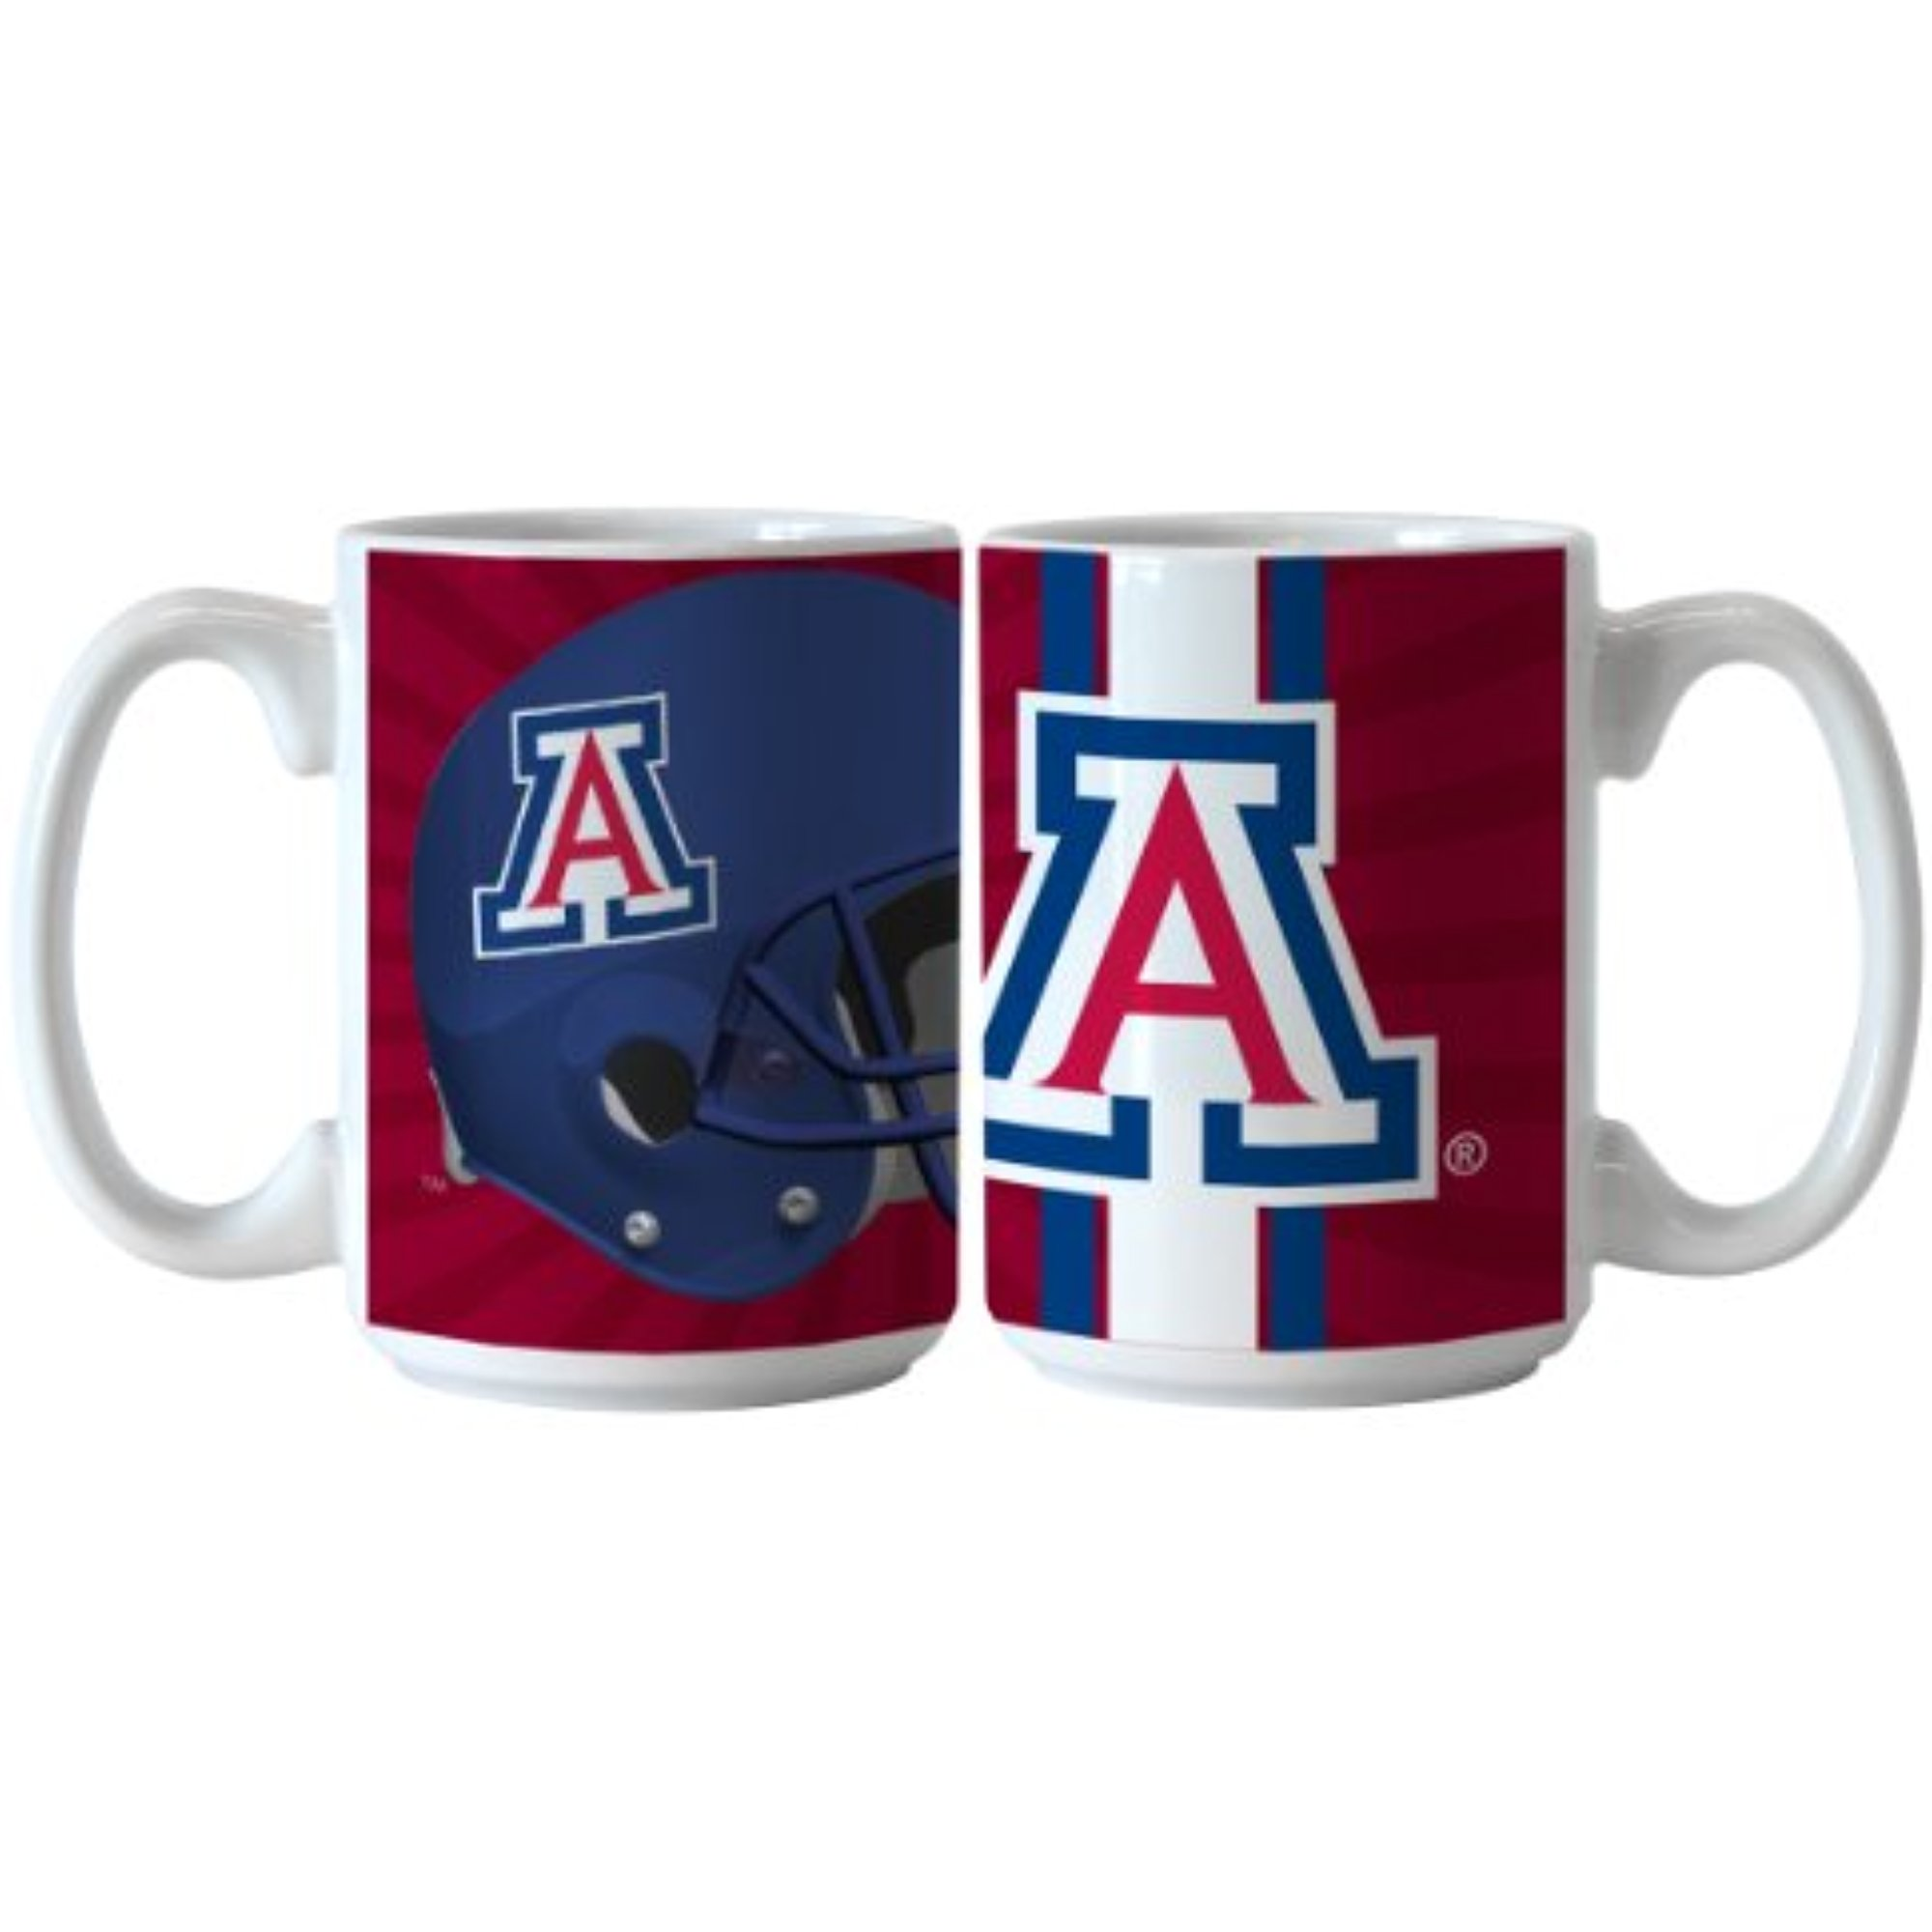 NCAA Arizona Wildcats Ceramic Burst Mug, 15-ounce, 2-Pack